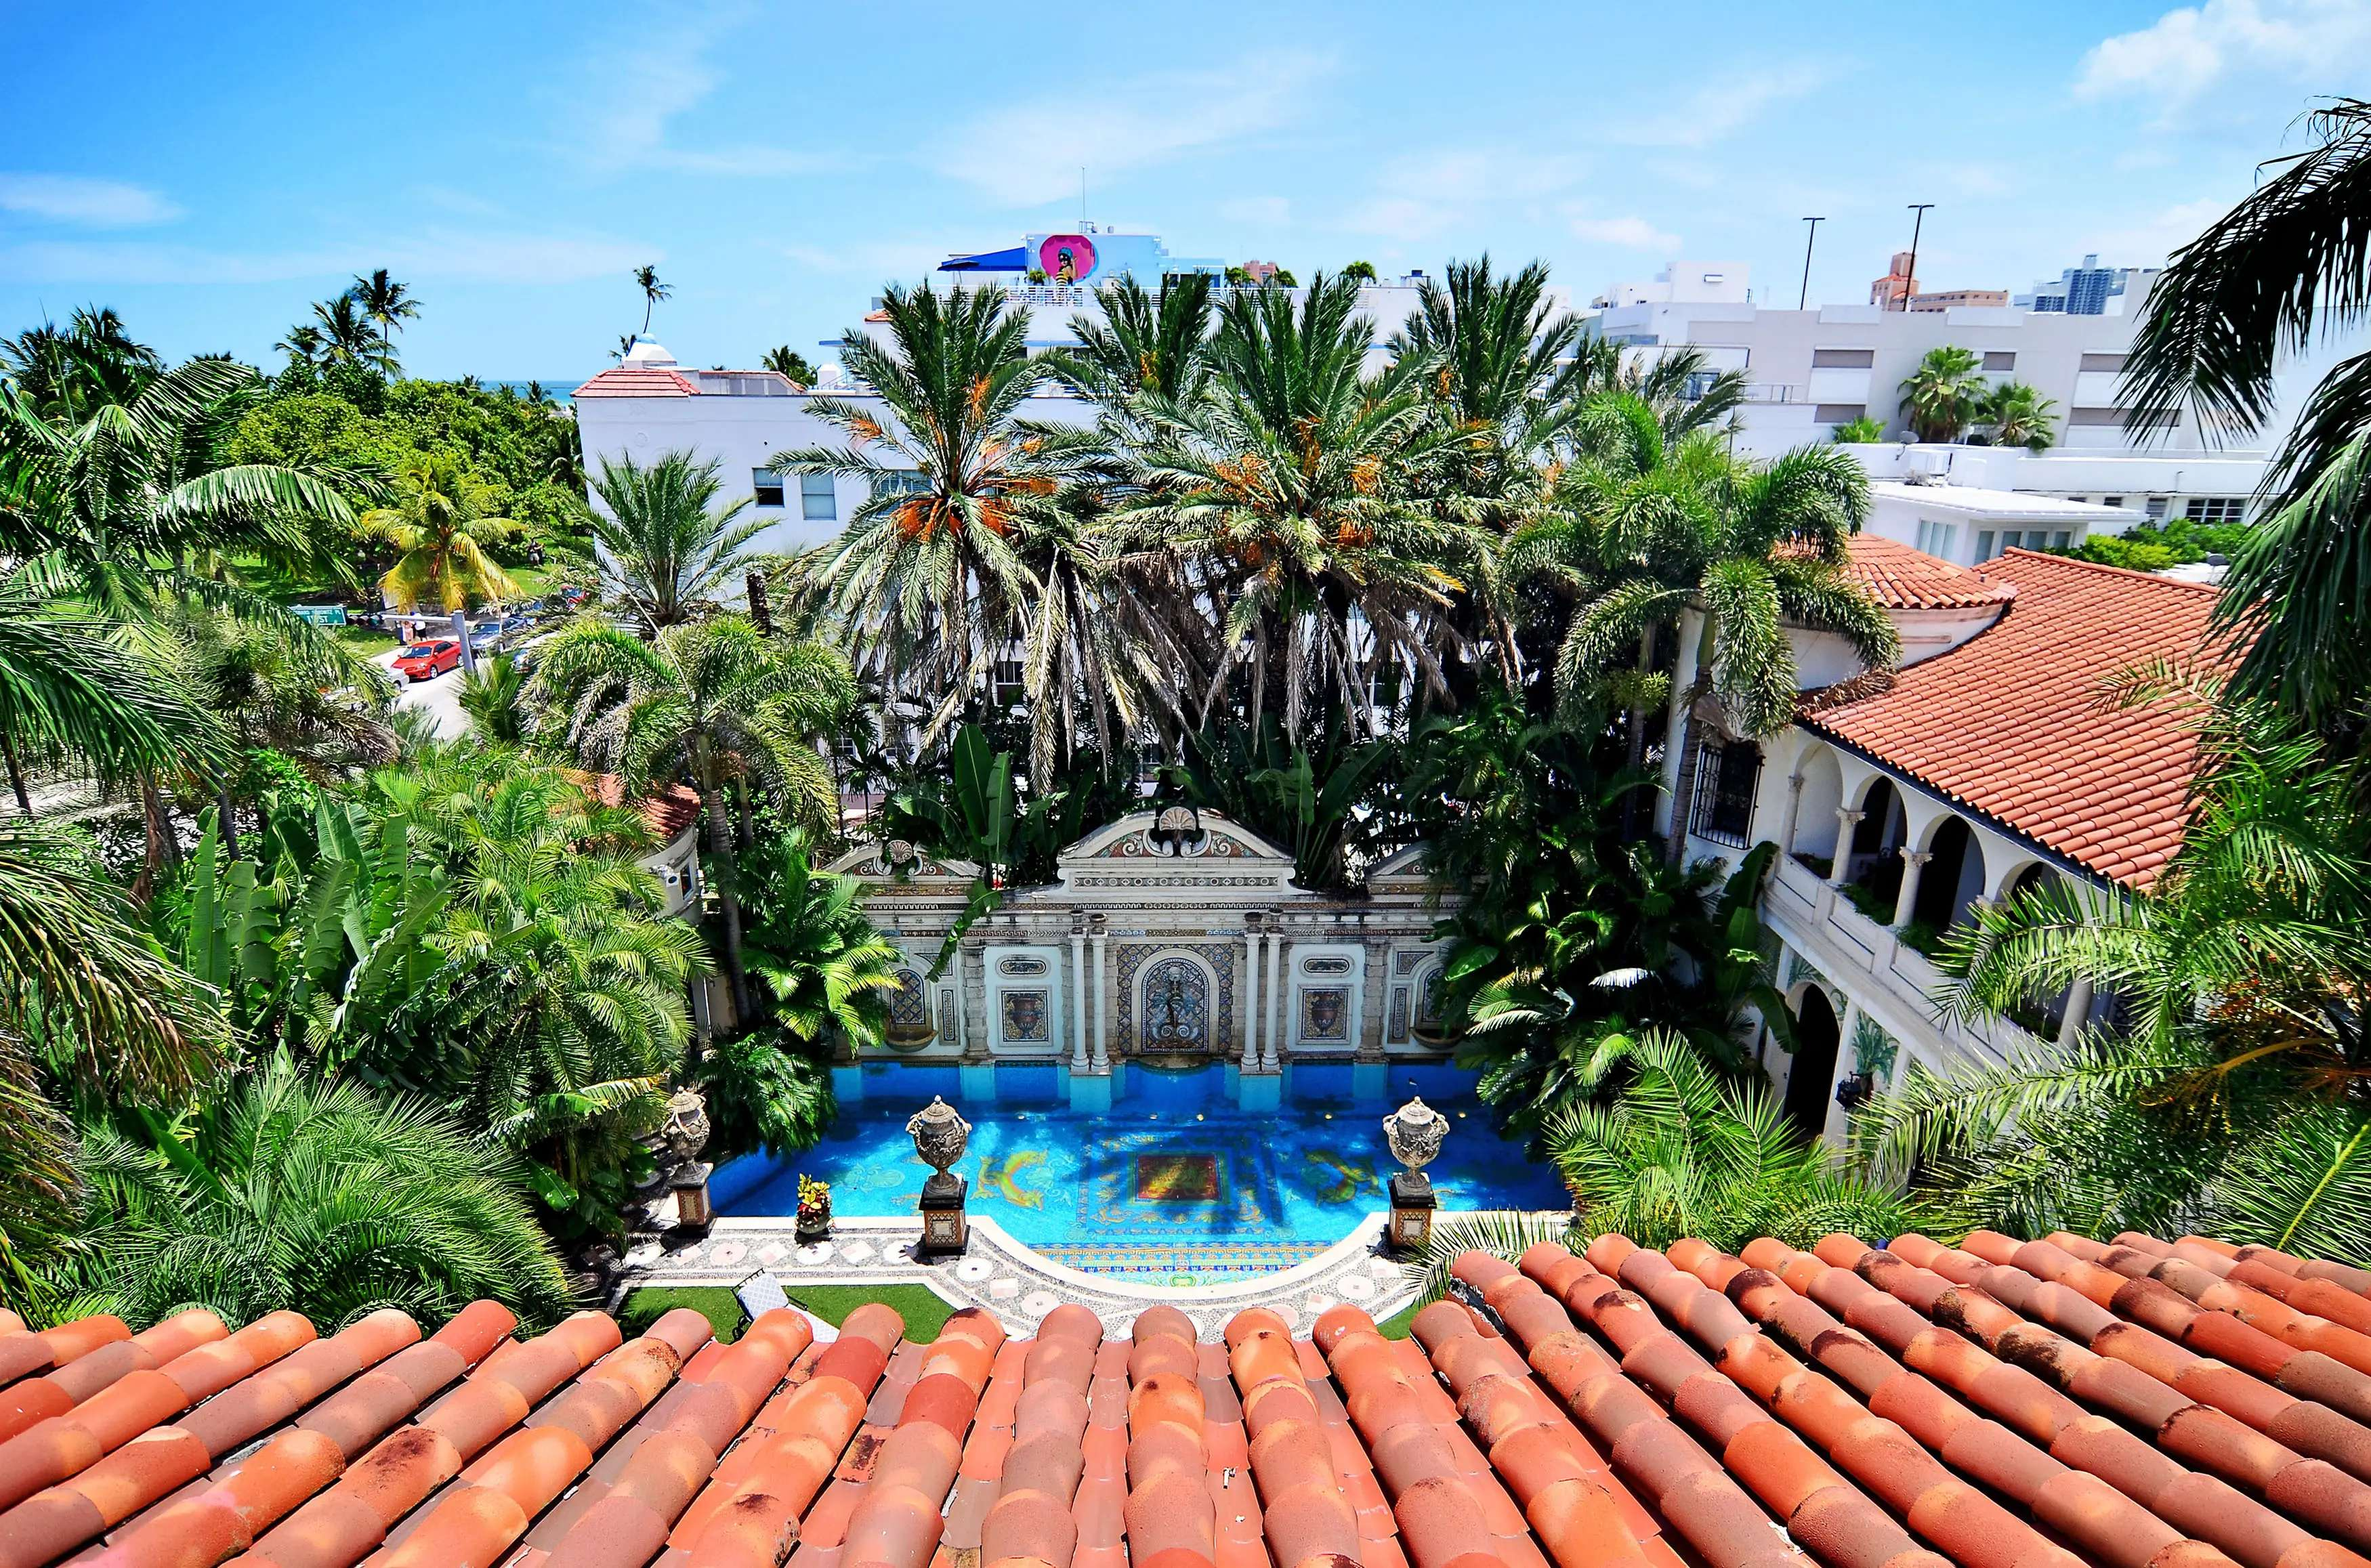 Versace originally bought the home in 1992 and spent $33 million renovating it.